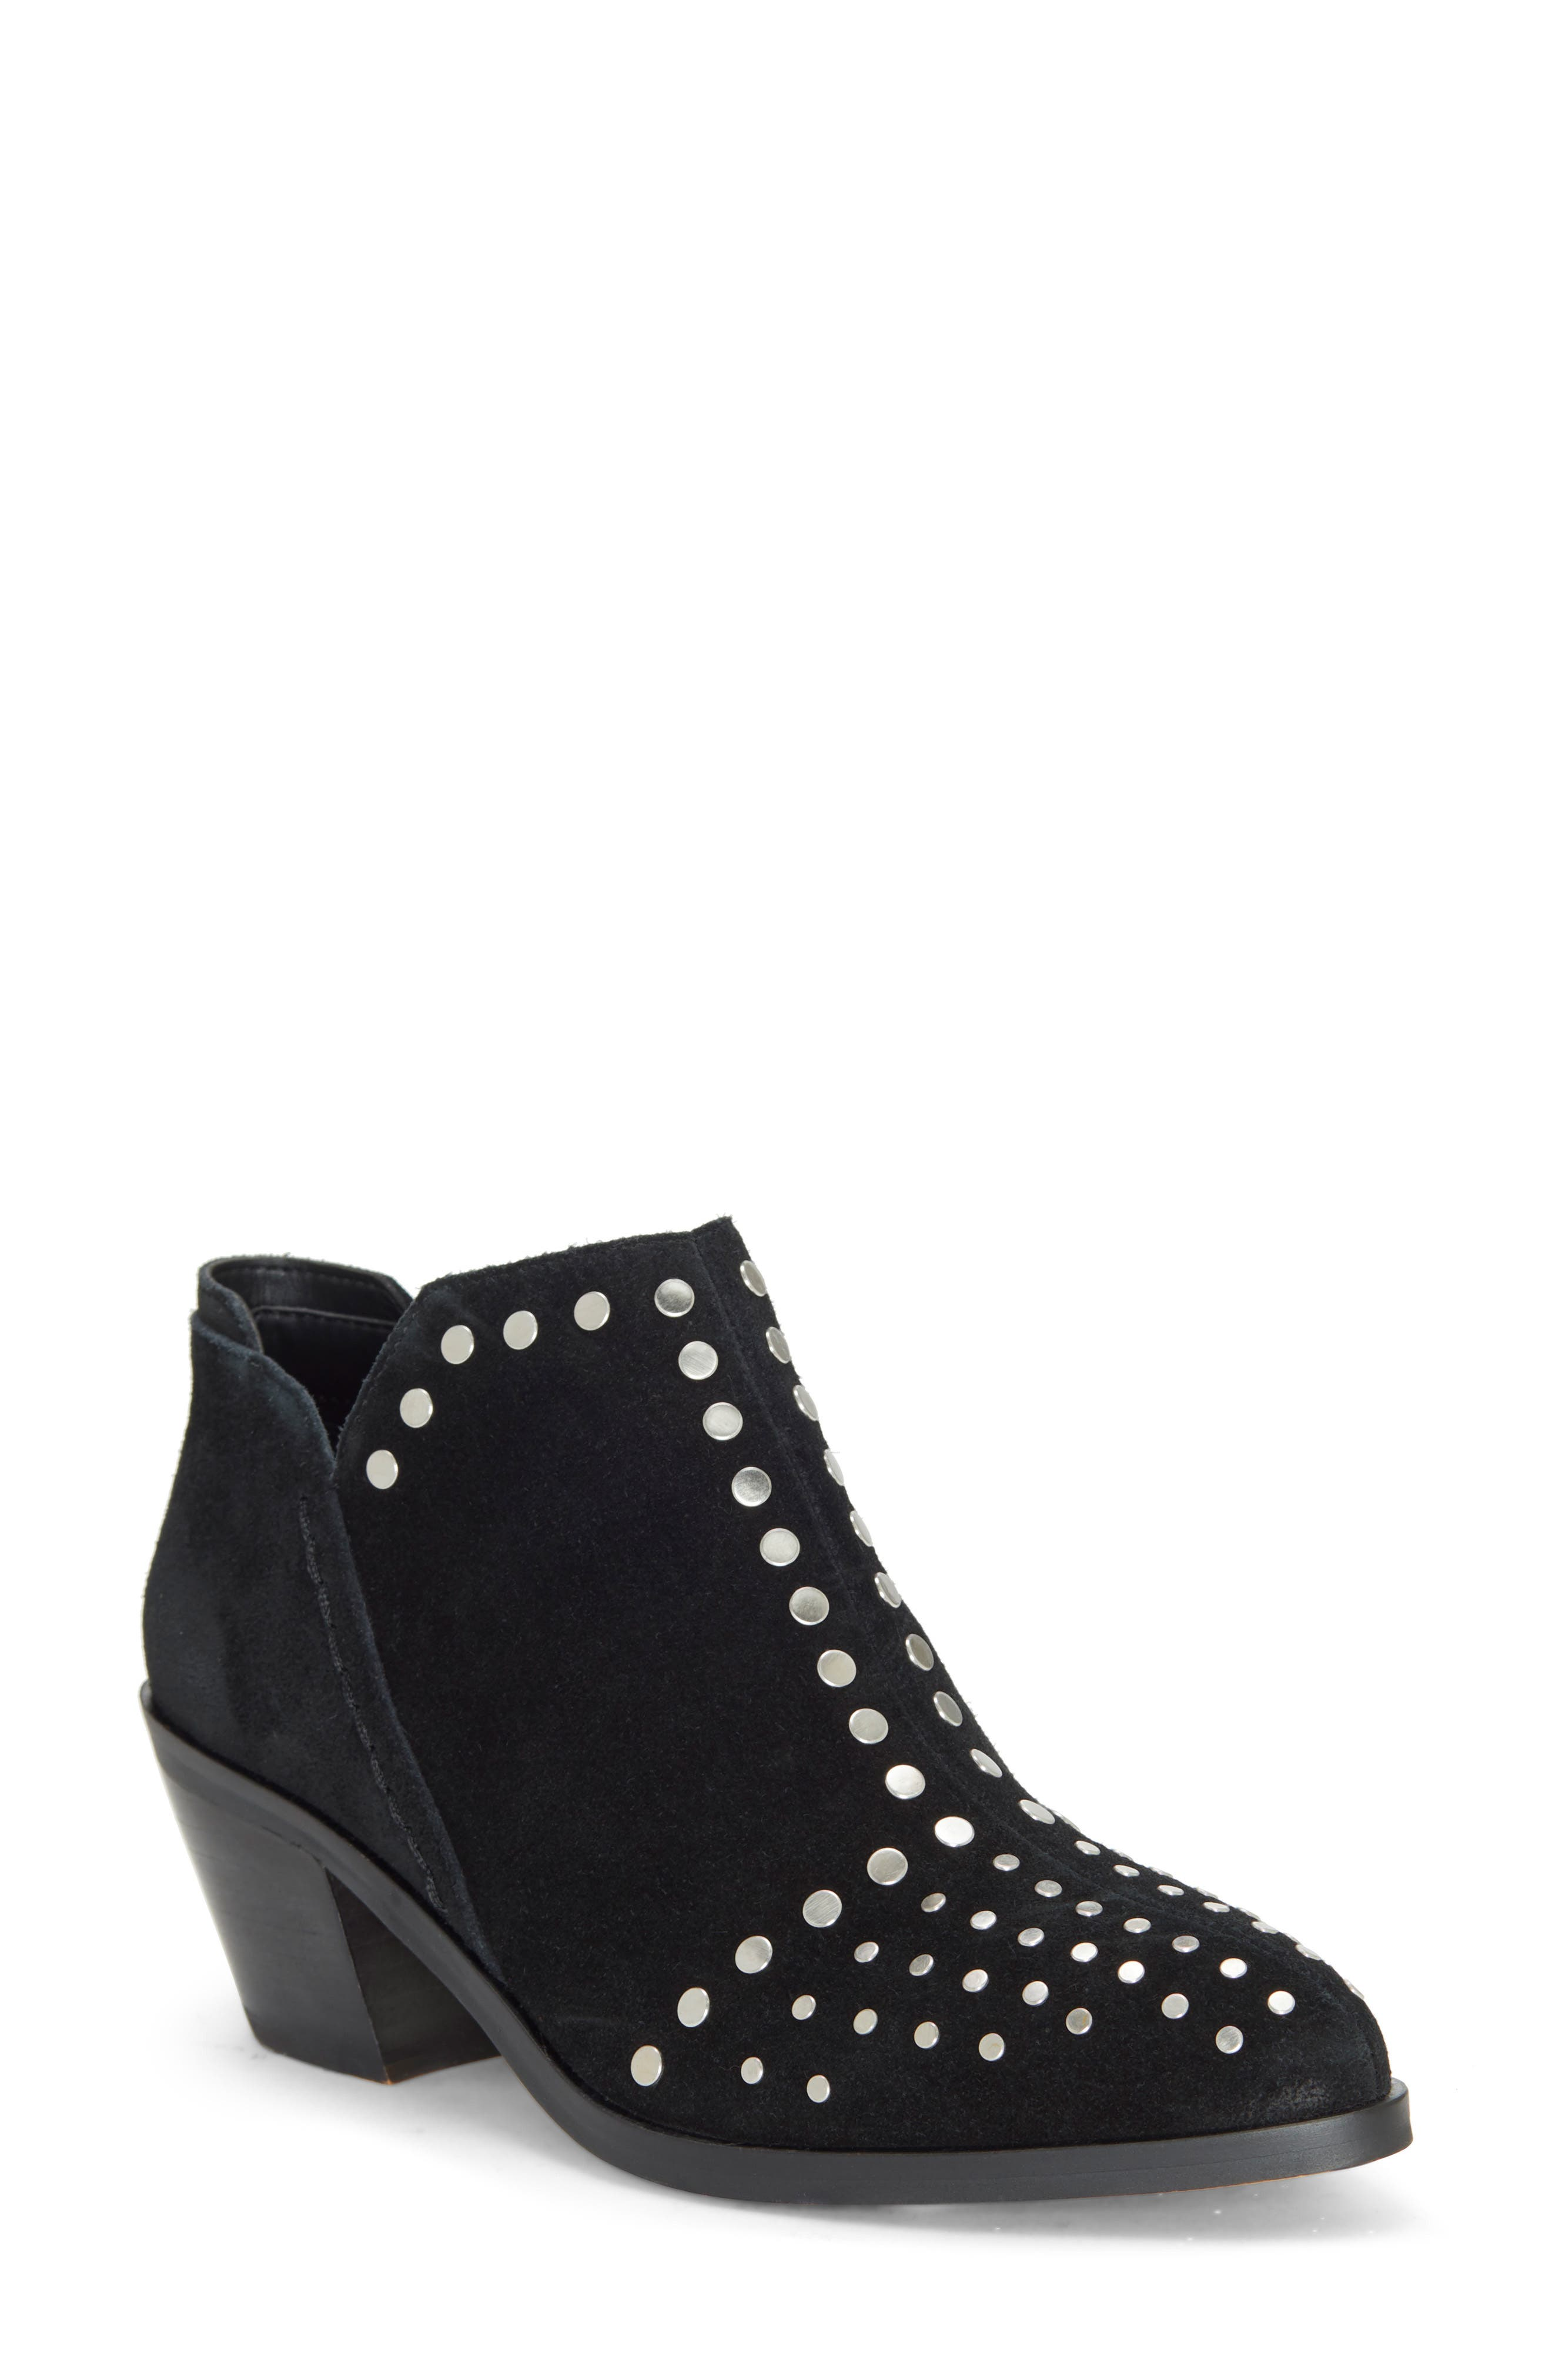 1.STATE, Loka Studded Bootie, Main thumbnail 1, color, BLACK SUEDE